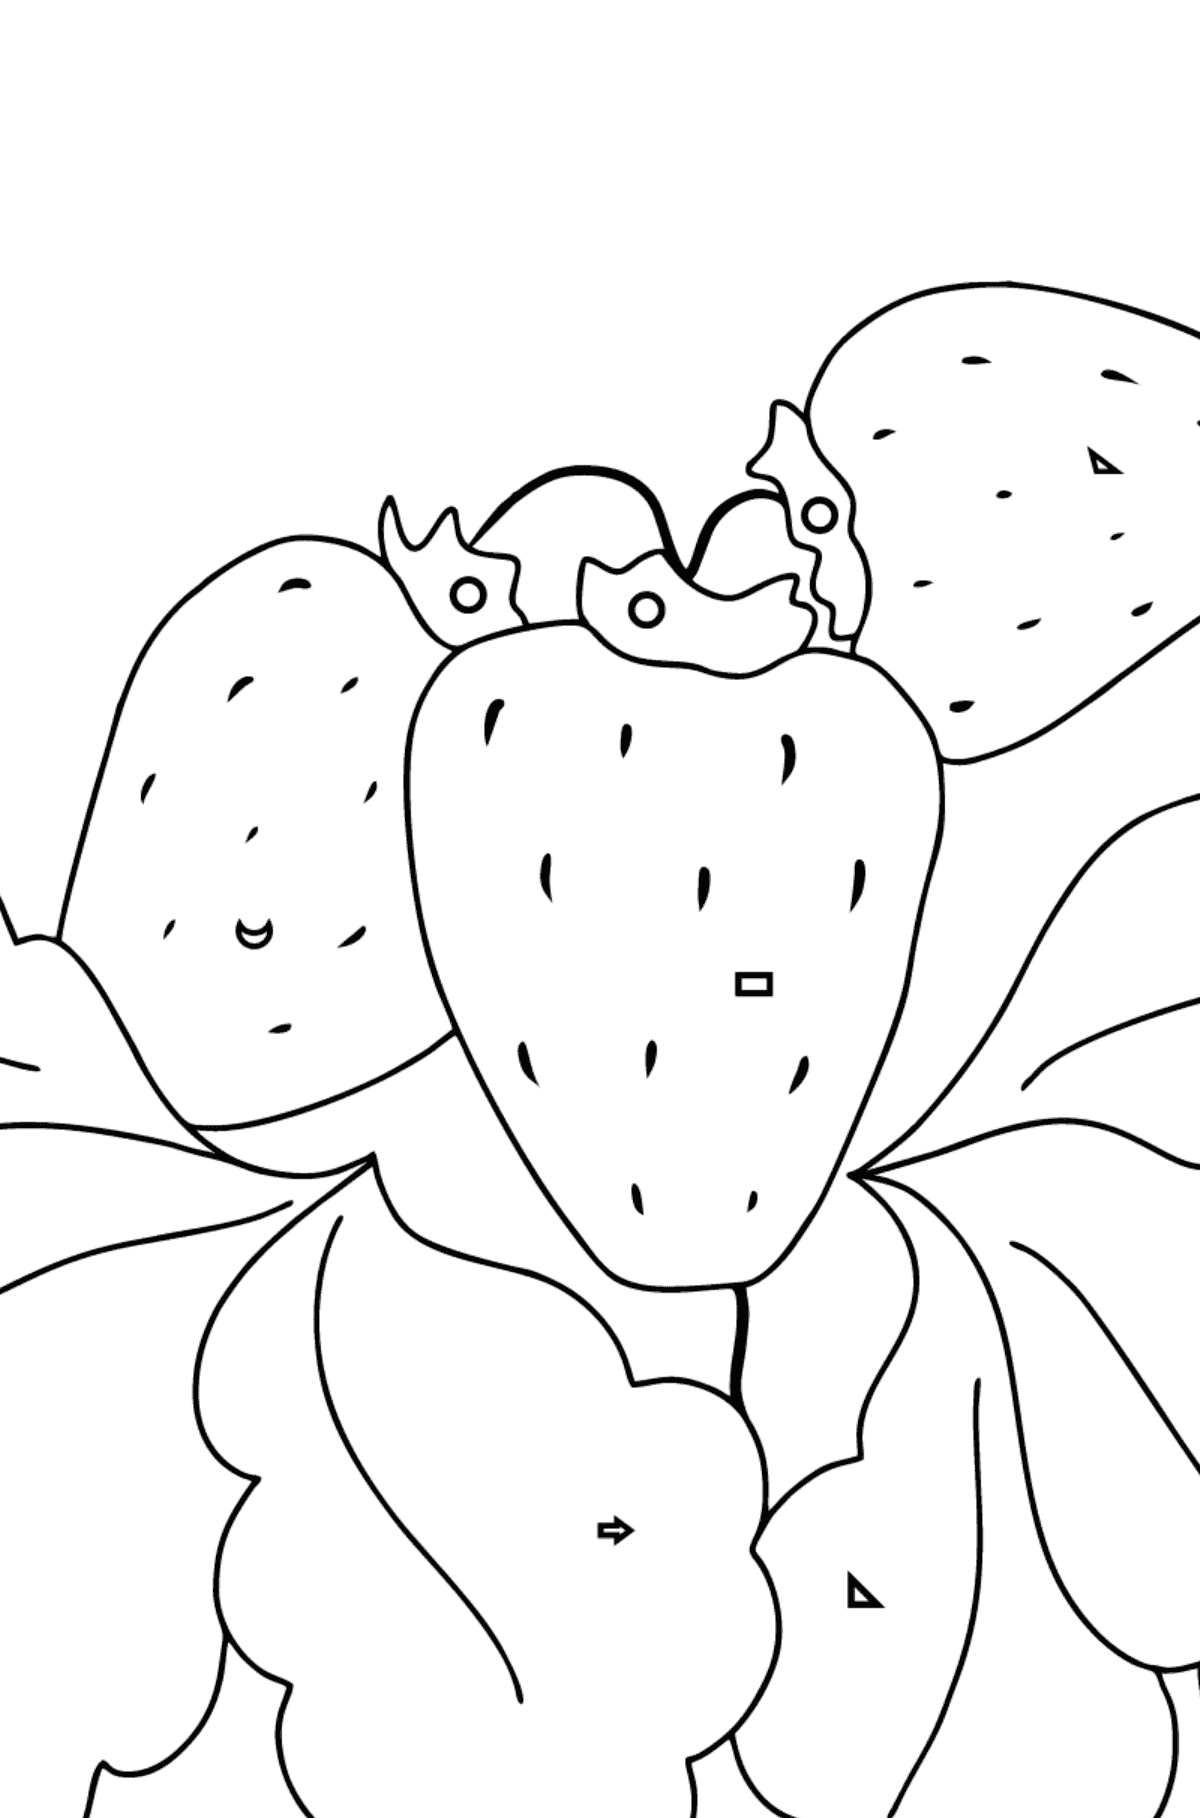 Coloring Page - Summer and Strawberries - Coloring by Geometric Shapes for Children